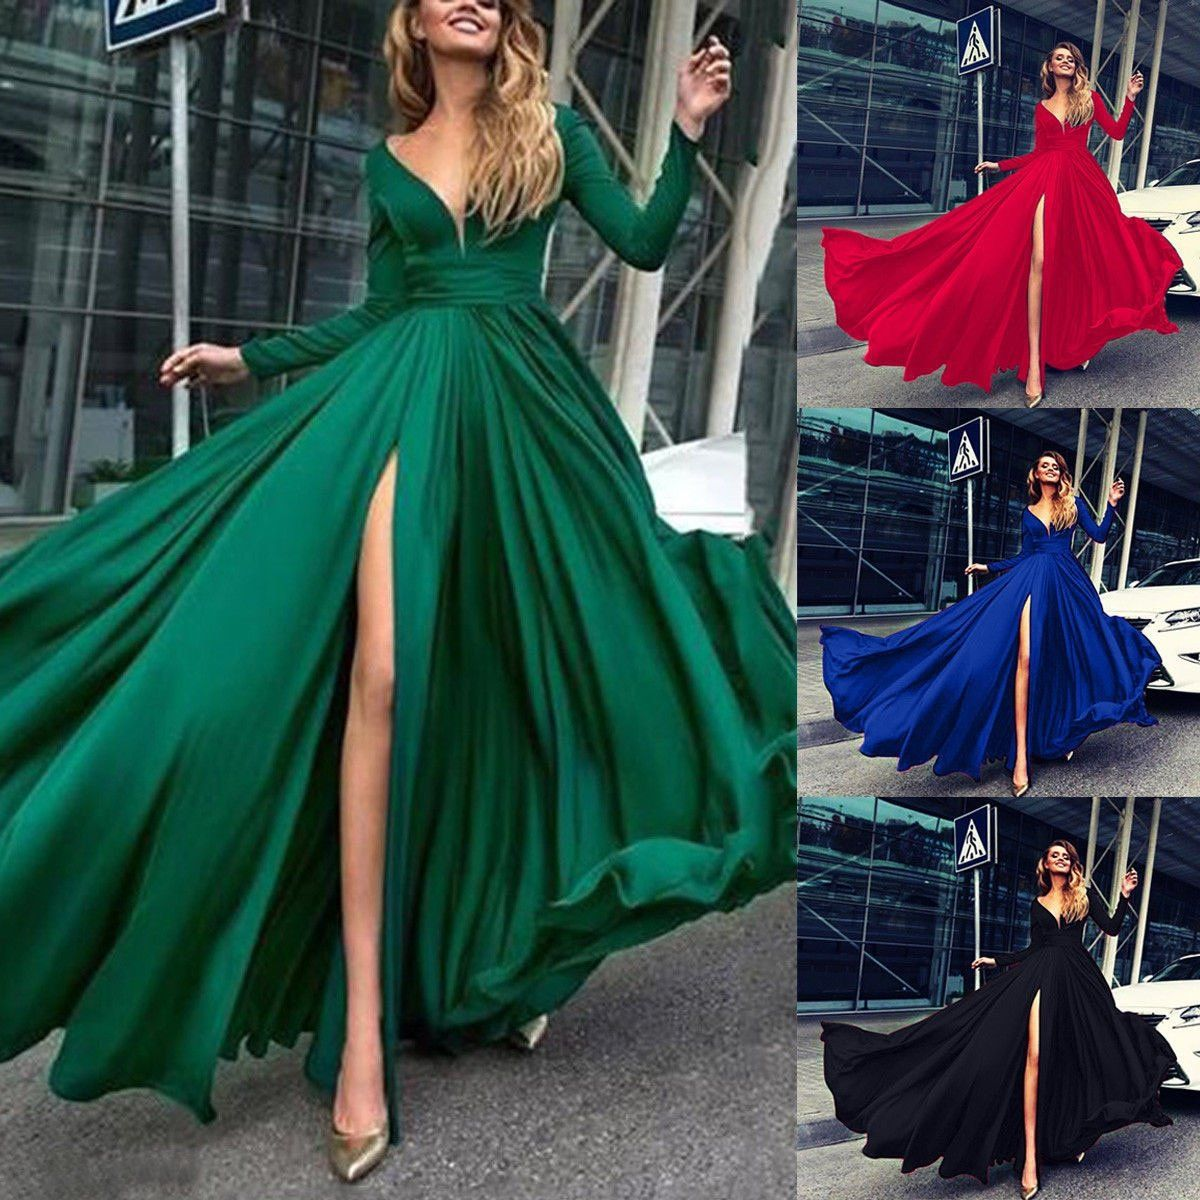 Nituyy New Summer Boho Women Vintage Elegant Long Sleeve Dress Evening Party Split Beach Dress Solid Color Casual Loose Sundress Walmart Com In 2021 Maxi Dress With Sleeves Long Sleeve [ 1200 x 1200 Pixel ]